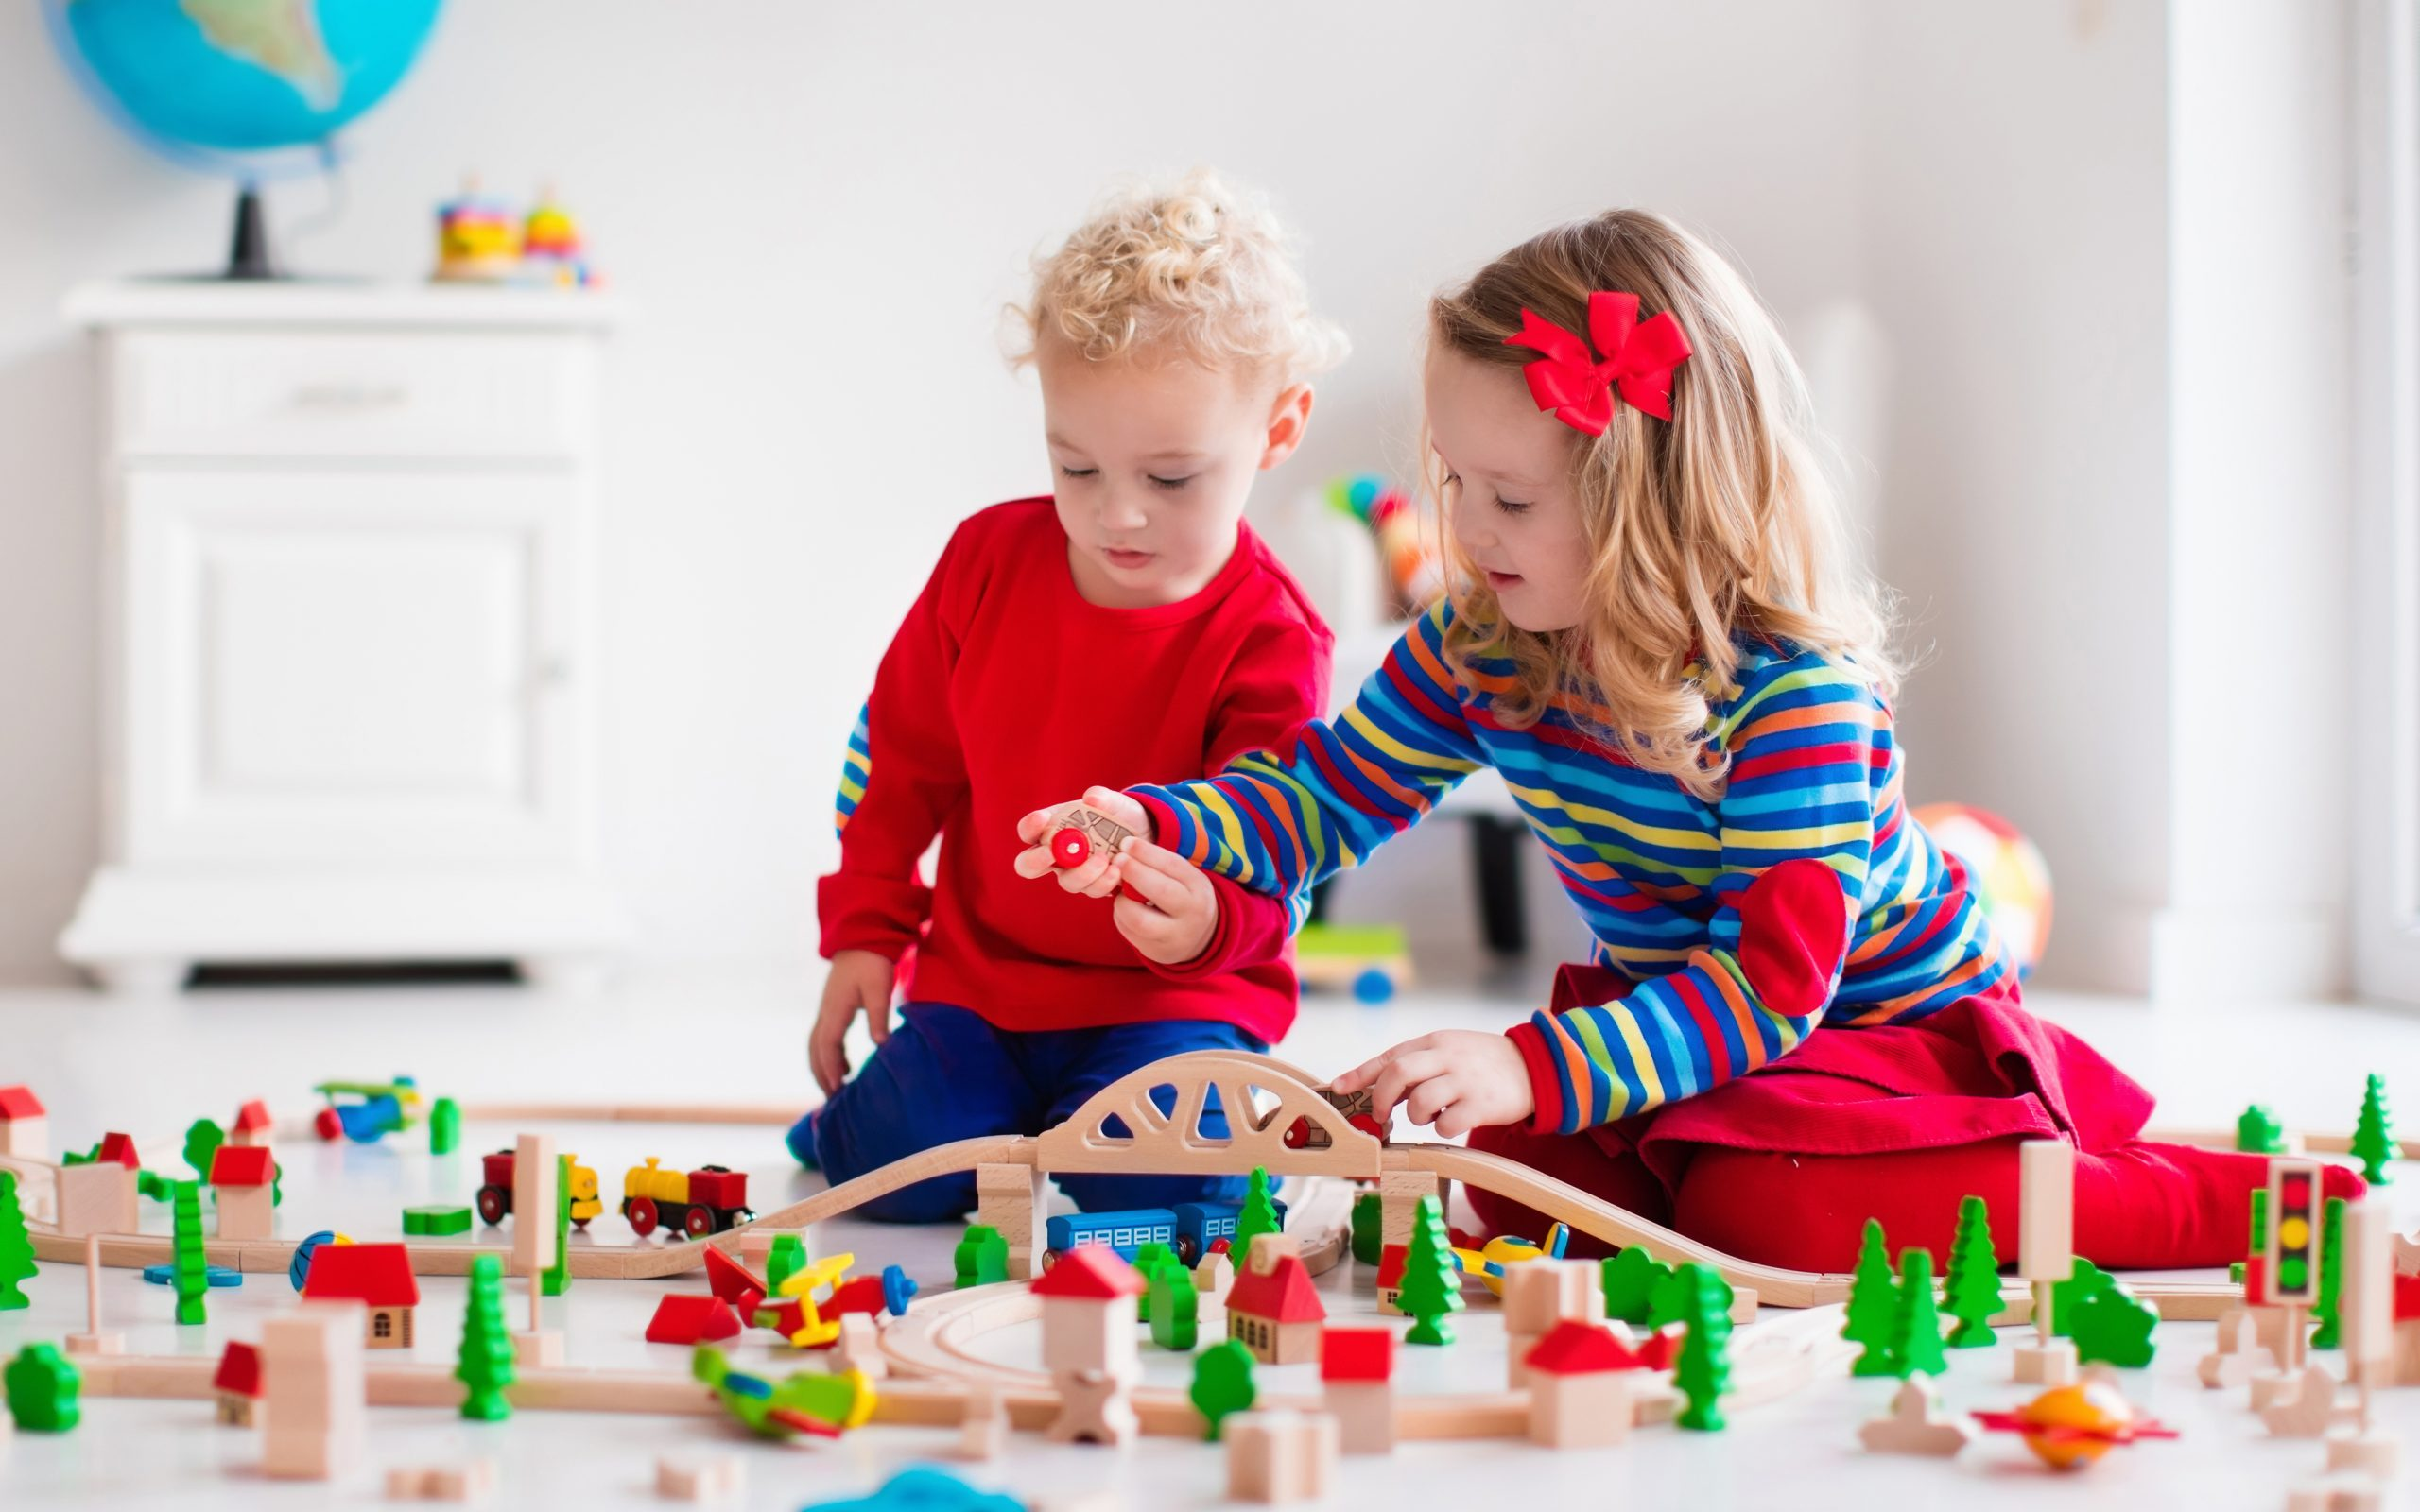 children playing with wooden train toddler kid and baby play with blocks trains and cars